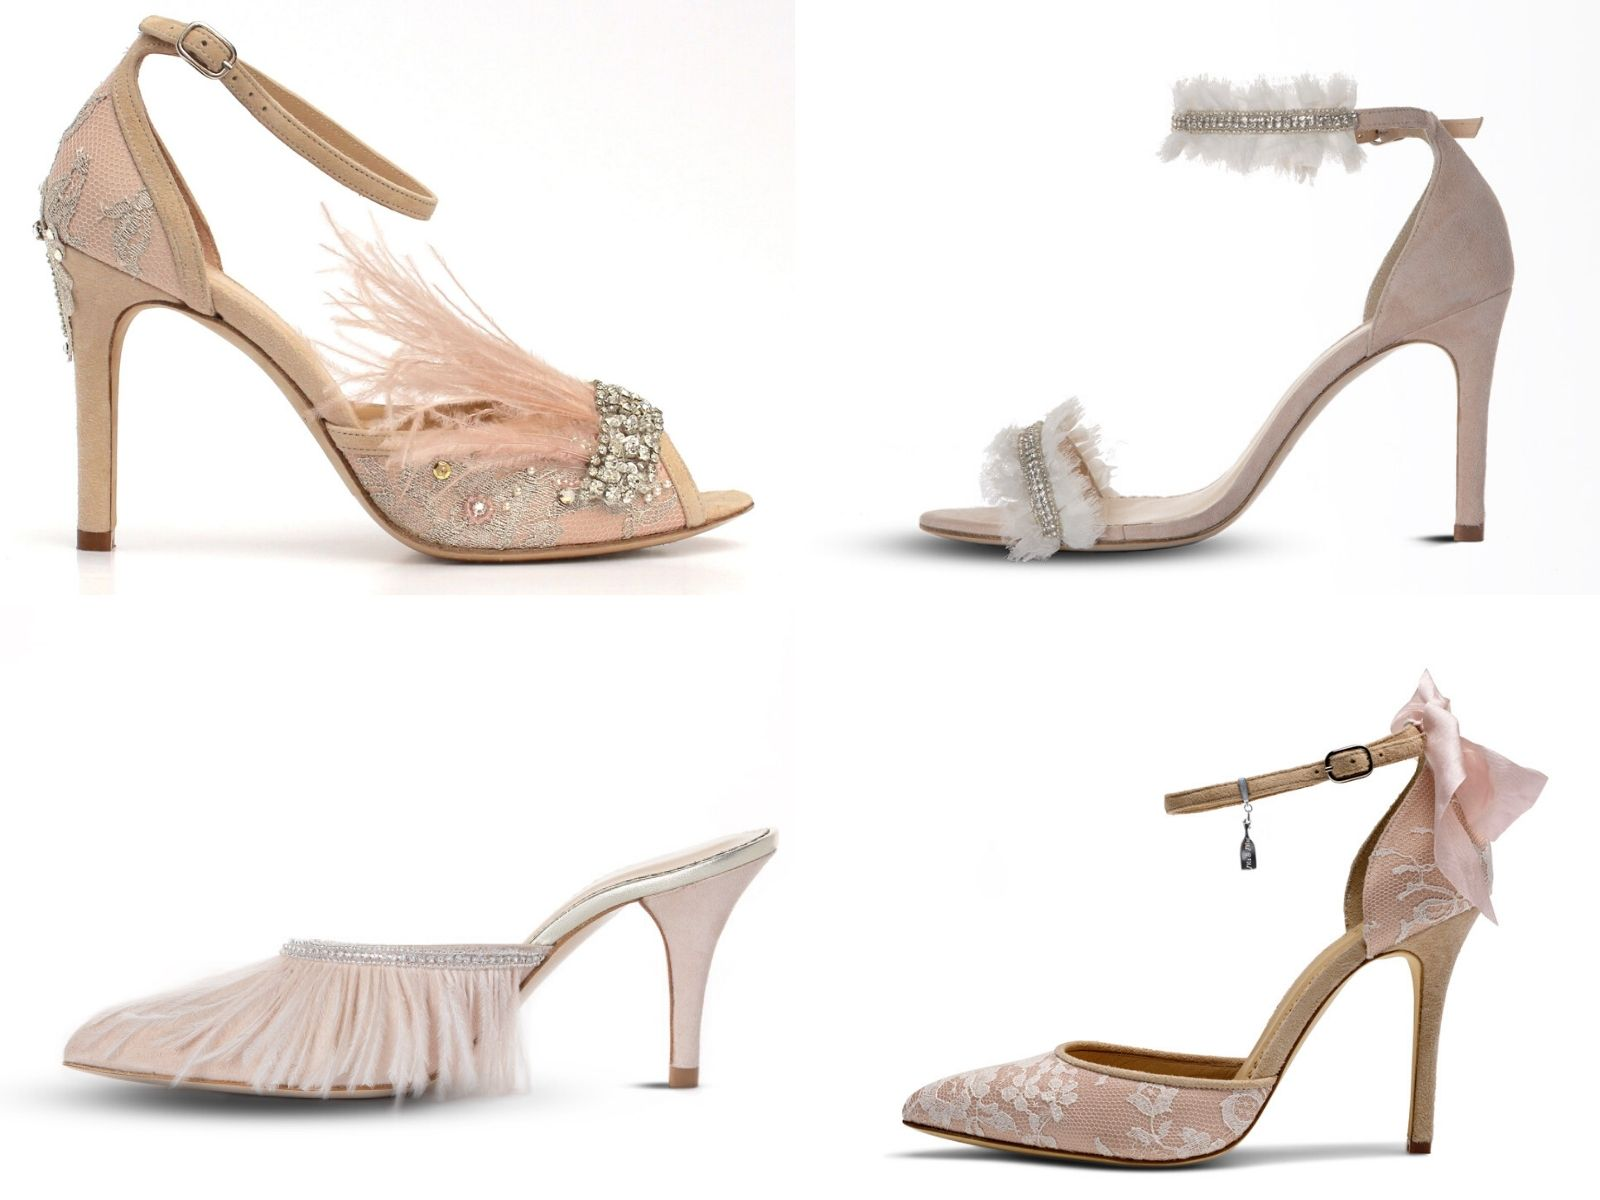 Boho-Bride-wedding-shoes-by-Di-Hassall